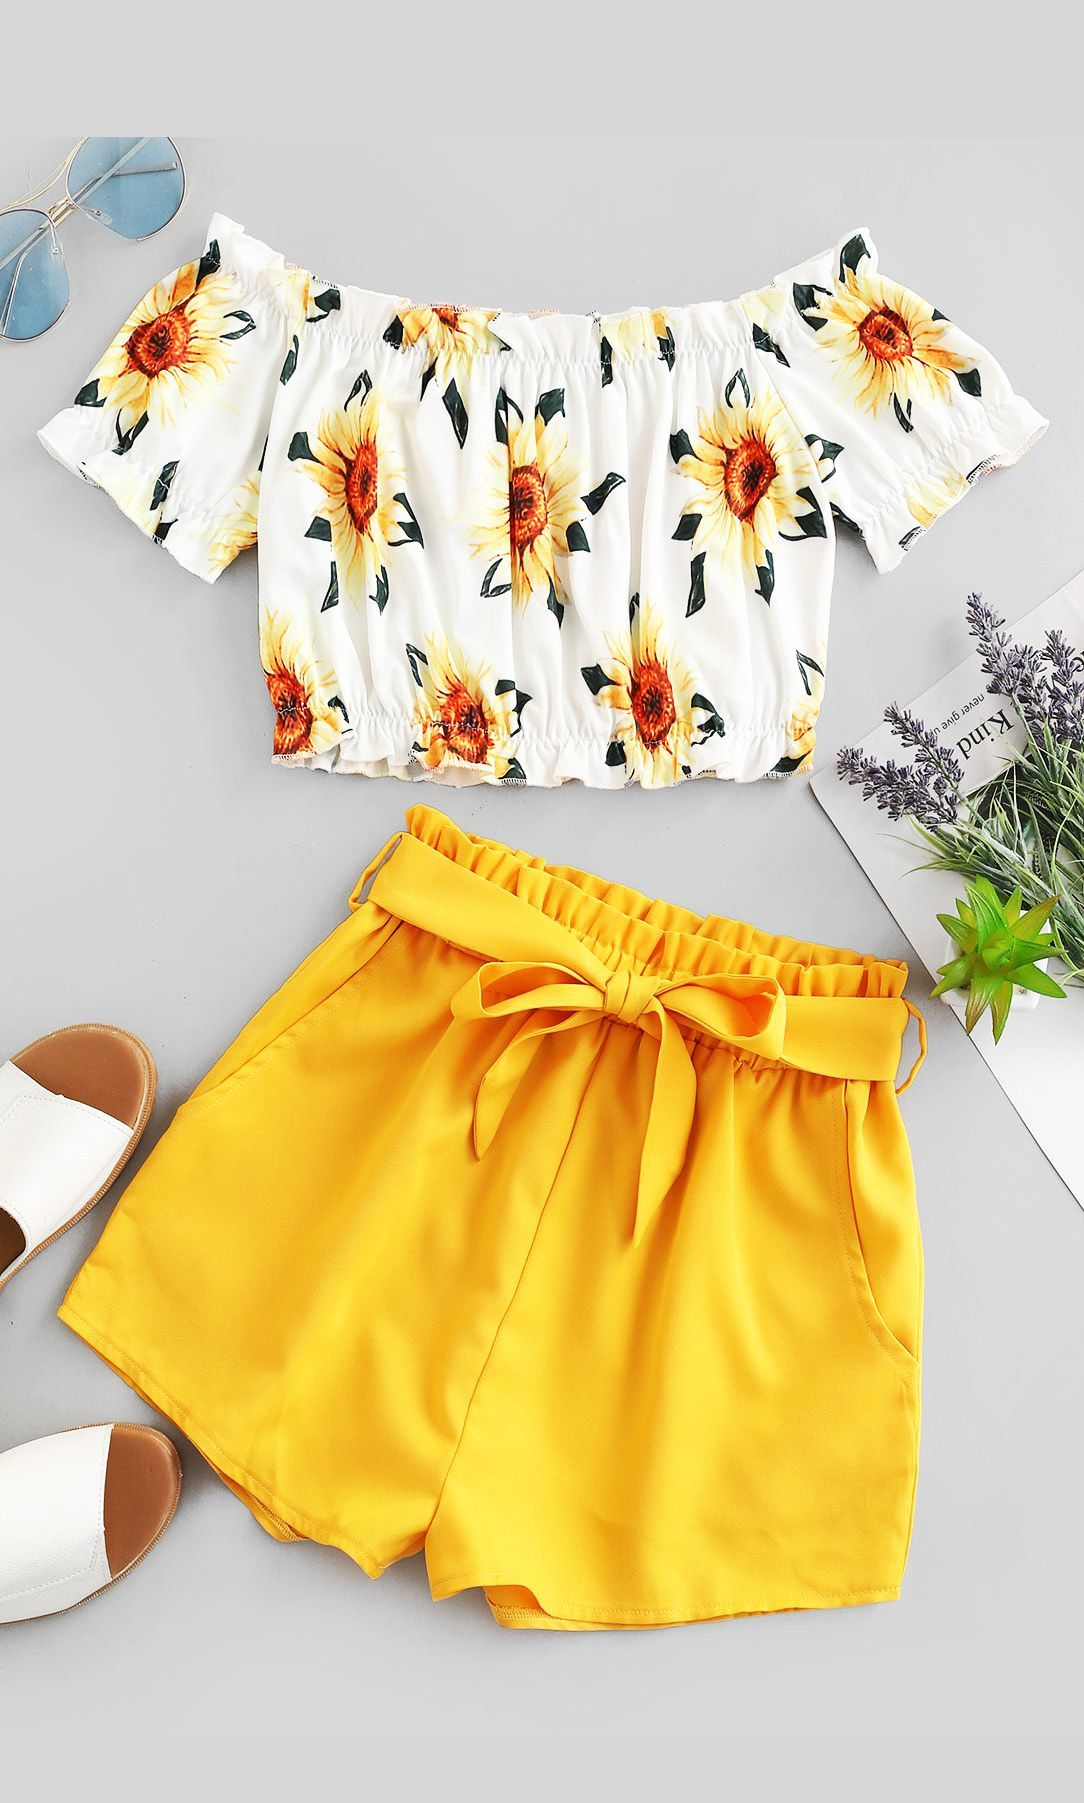 Cute Off Shoulder Sunflower two pieces outfit Cute Off Shoulder Sunflower two pieces outfit Linlou linlou999 Moodboard Take in plenty of sunshine with this sunflower two-piece set nbsp  hellip   #babyclothinggirlsunflower #outfit #pieces #shoulder #sunflower